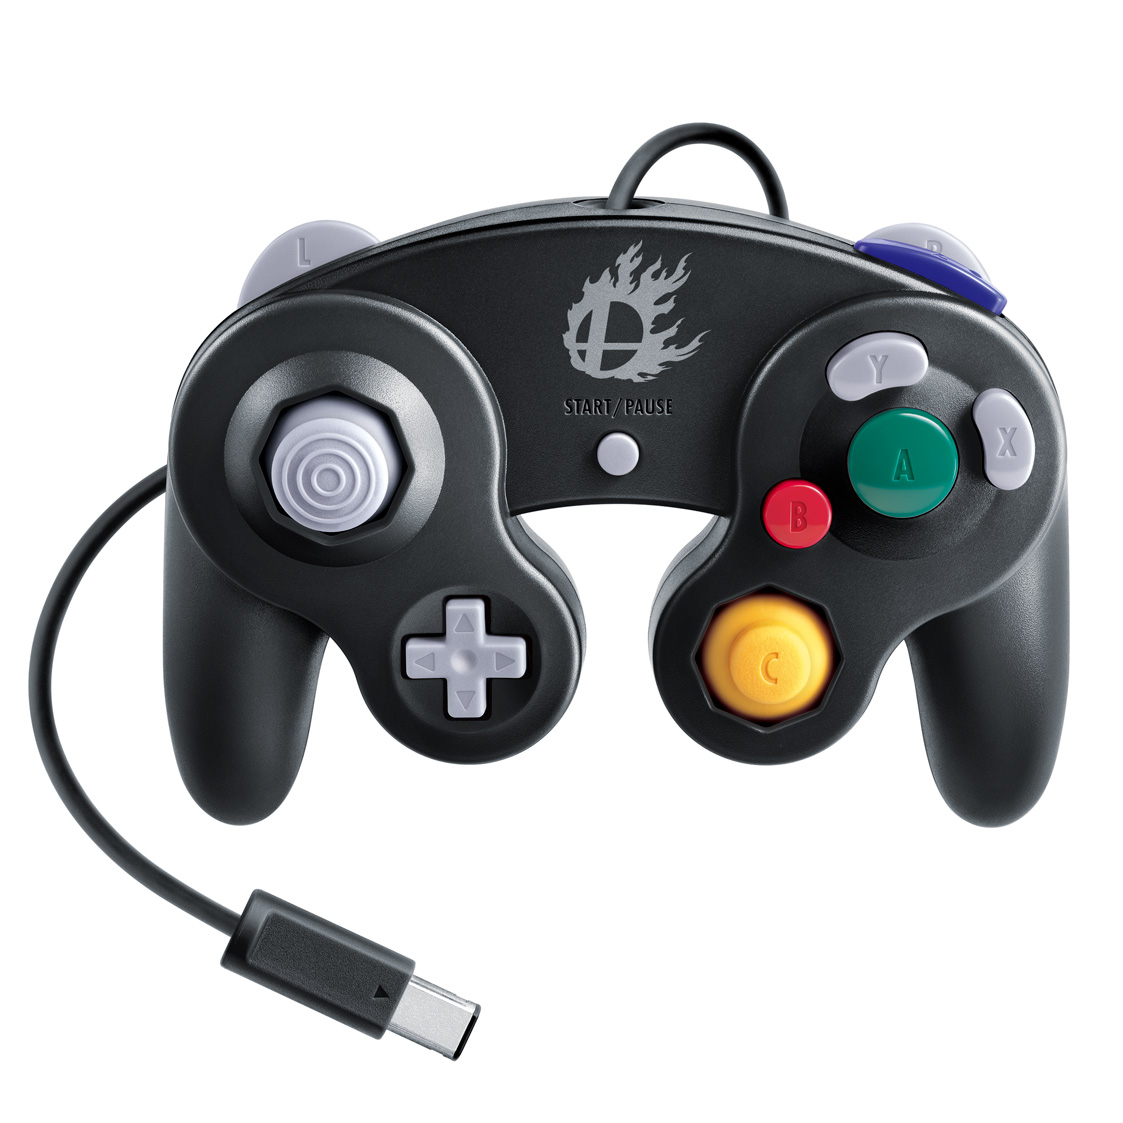 GameCube Controller - Super Smash Bros. Edition Wii U